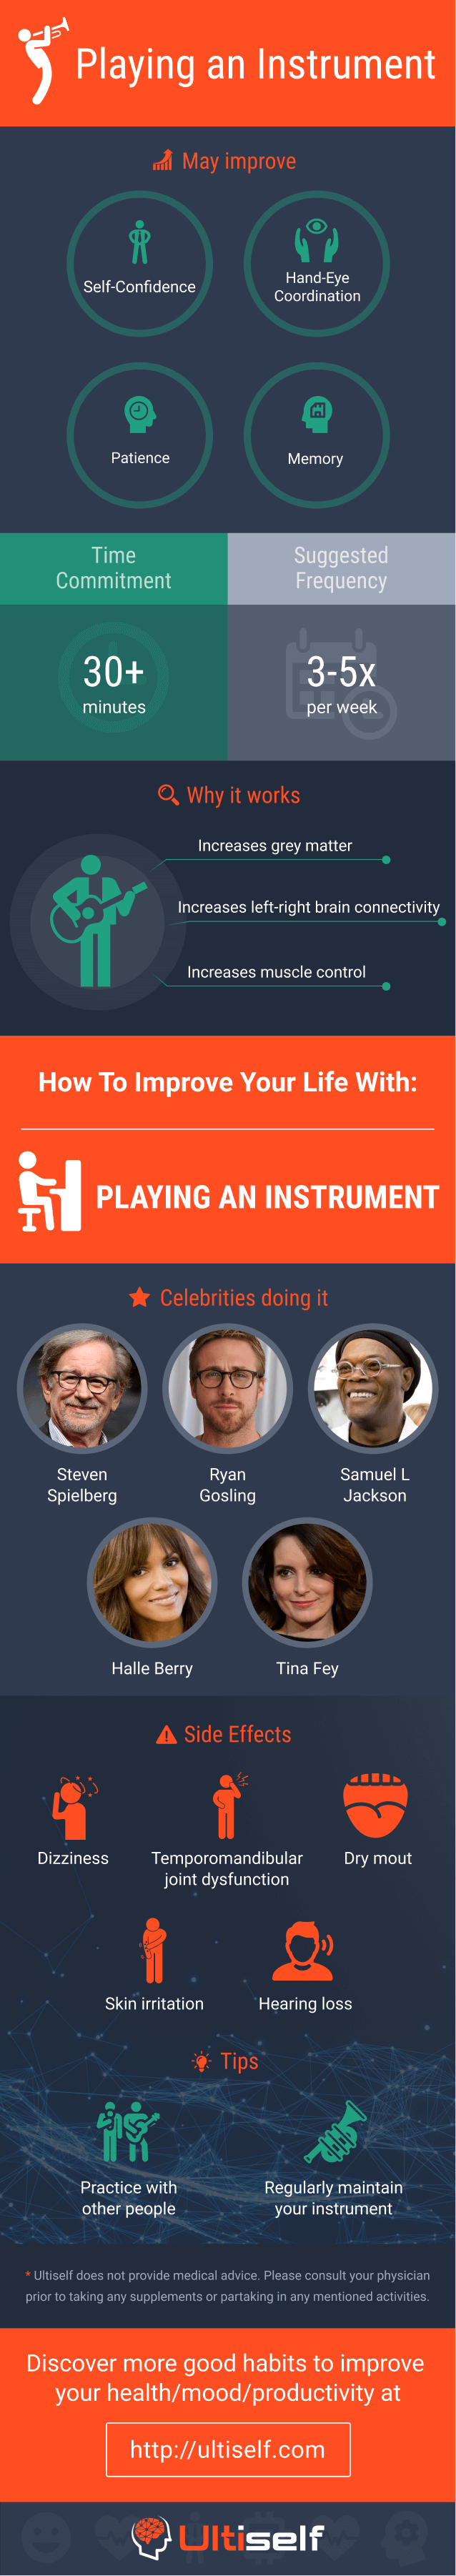 Playing an Instrument infographic